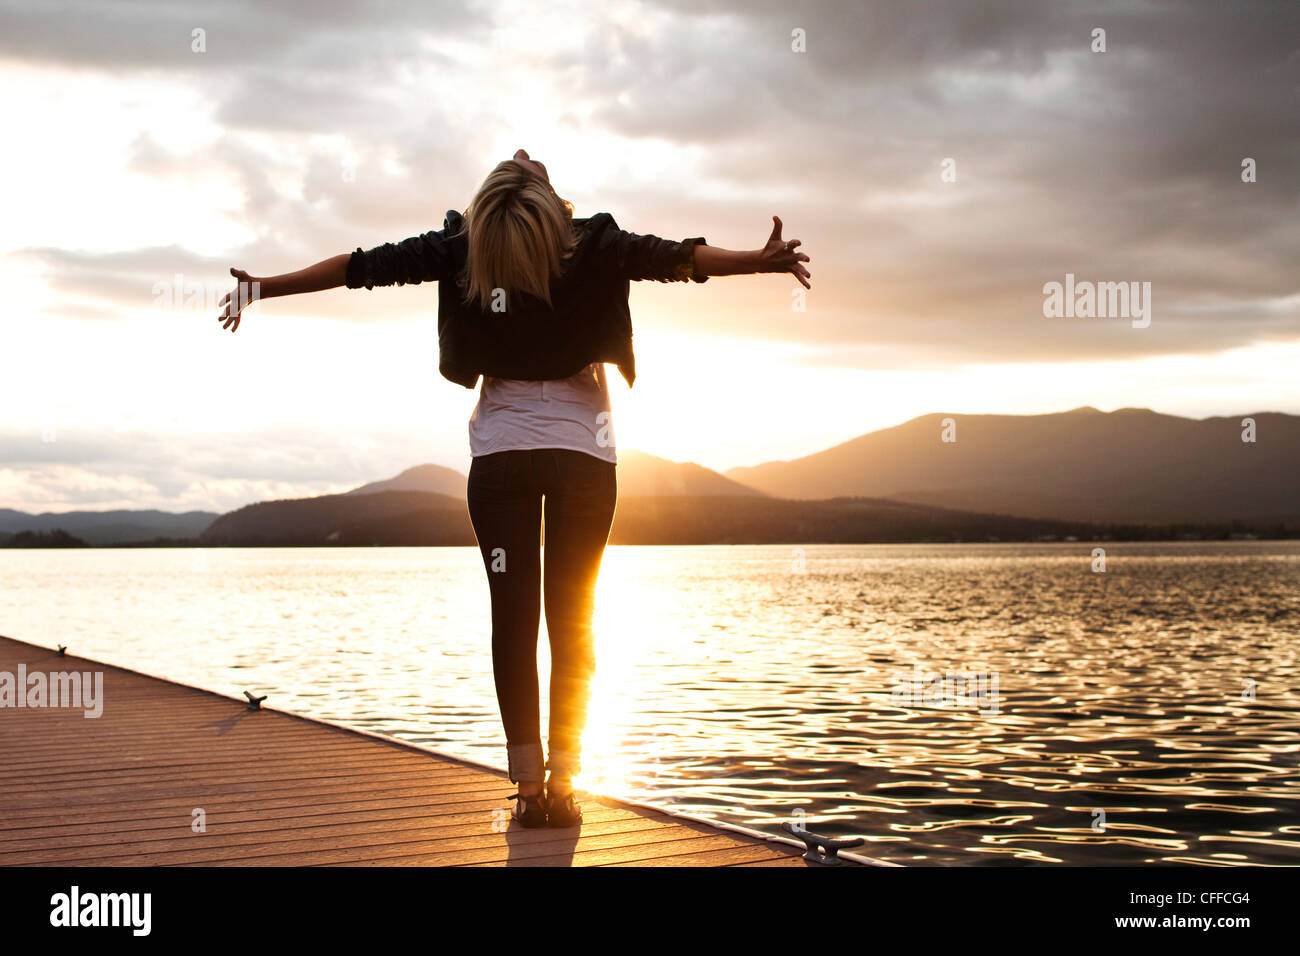 A beautiful young woman looking into the distance holds her arms out embracing the sunset over a lake in Idaho. - Stock Image